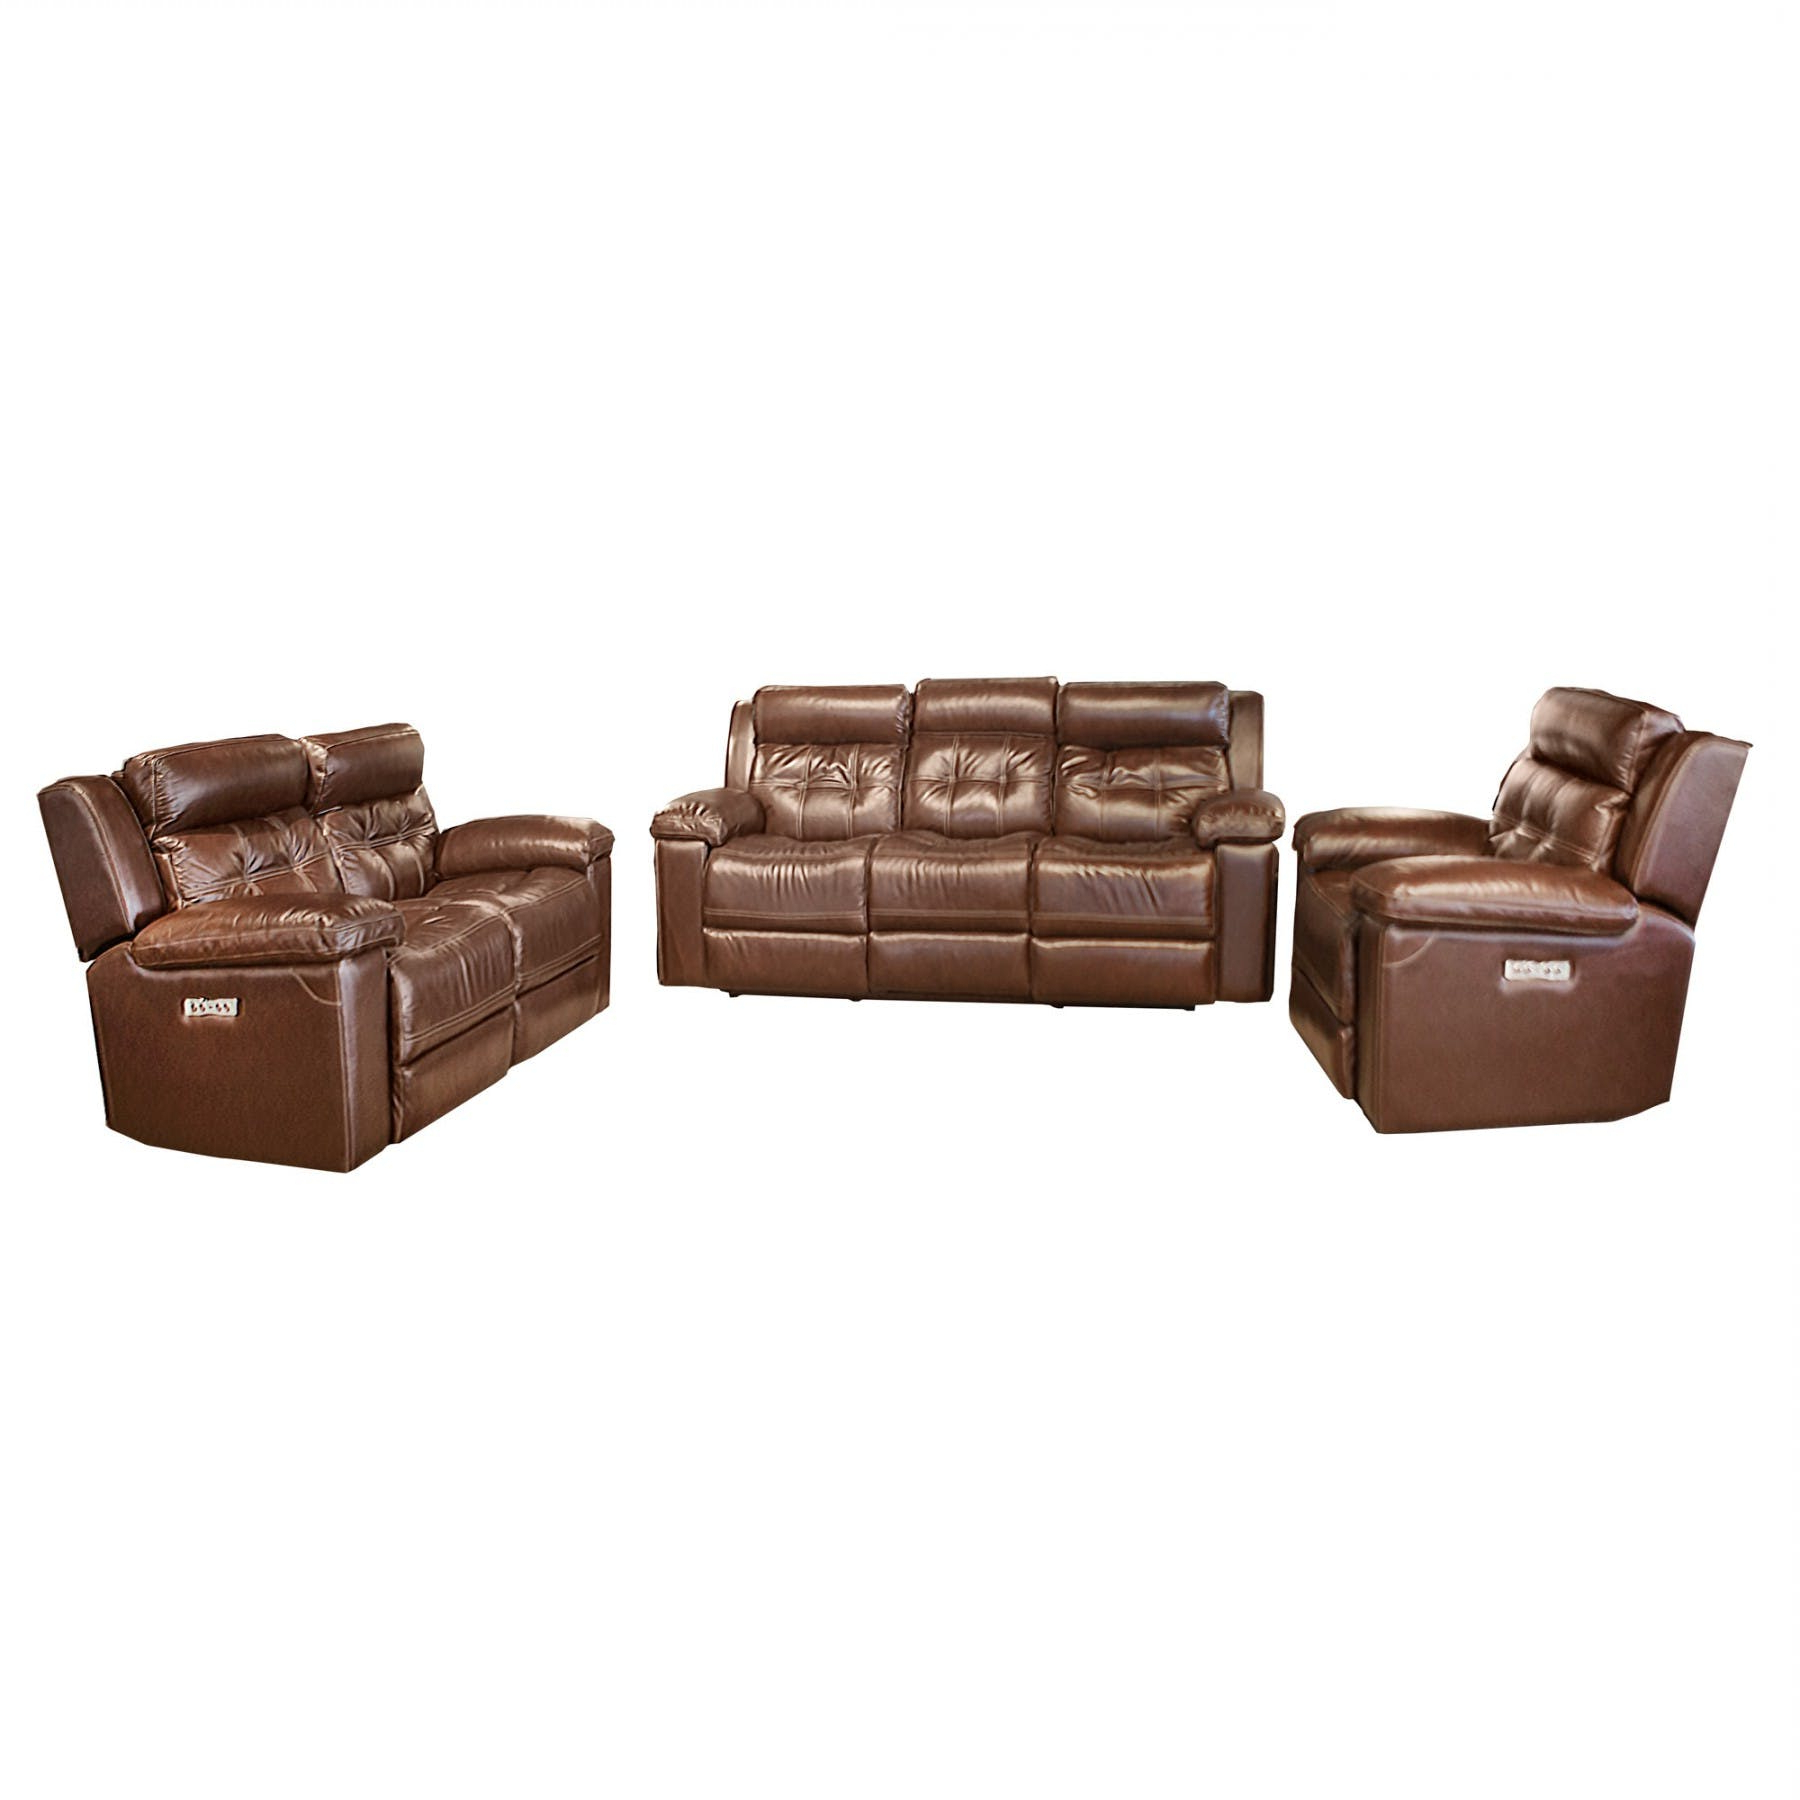 Waylon 3 Piece Power Reclining Sectionals Intended For Famous Archer Davenport Power Reclining Sofa With Power Headrest – Bernie (View 20 of 20)